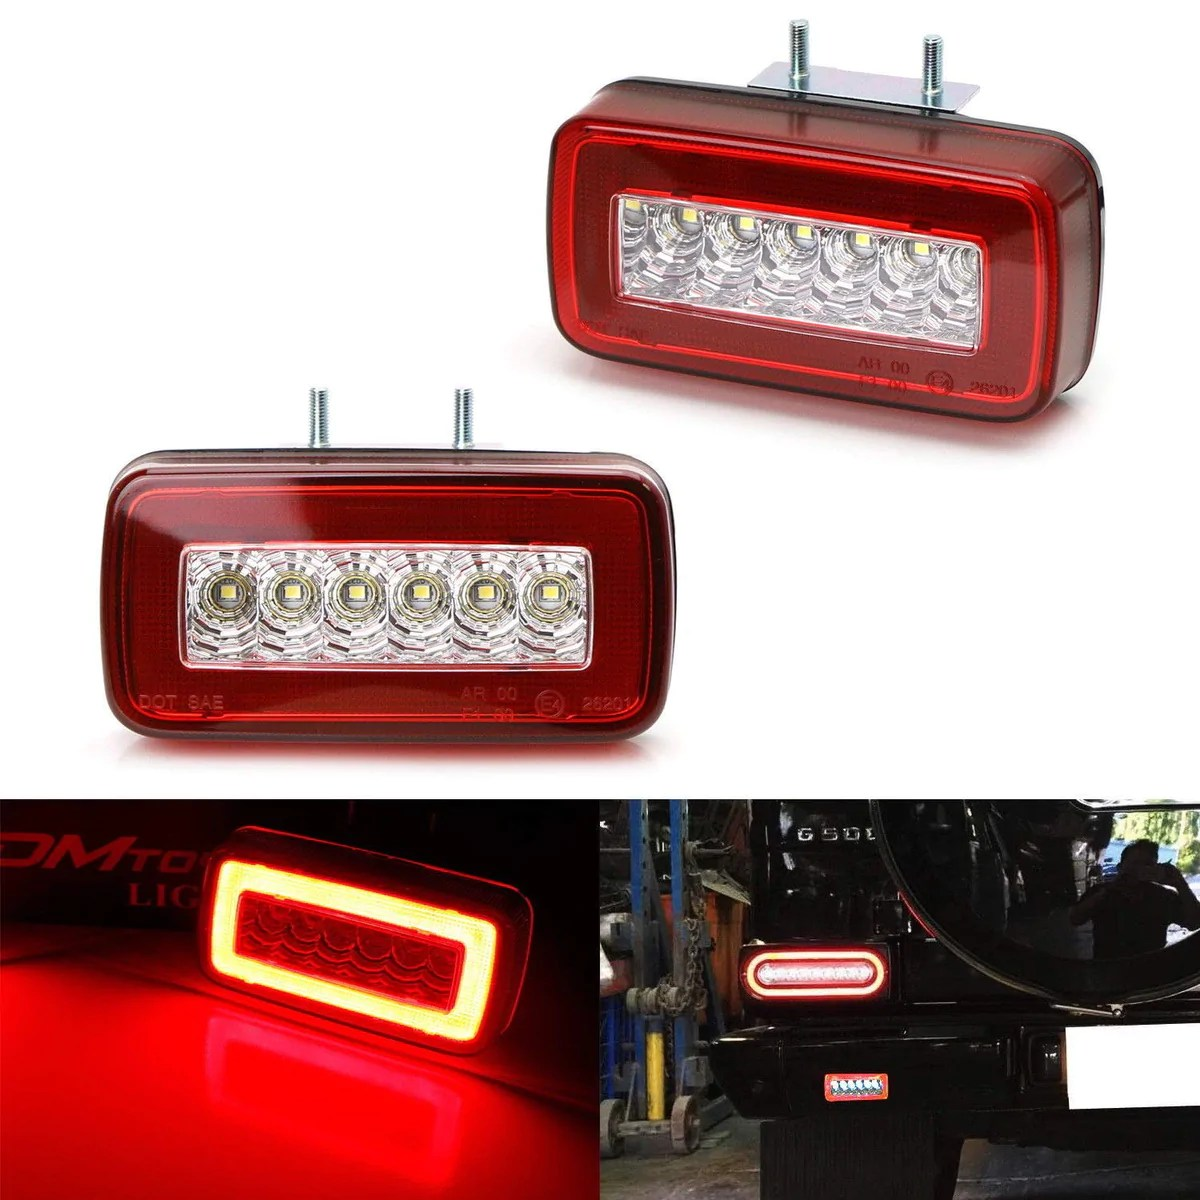 hight resolution of red or smoked lens 3 in 1 led rear fog backup light kit for 1986 2018 mercedes benz w463 g class g500 g550 g55 g63 amg functions as rear fog driving brake